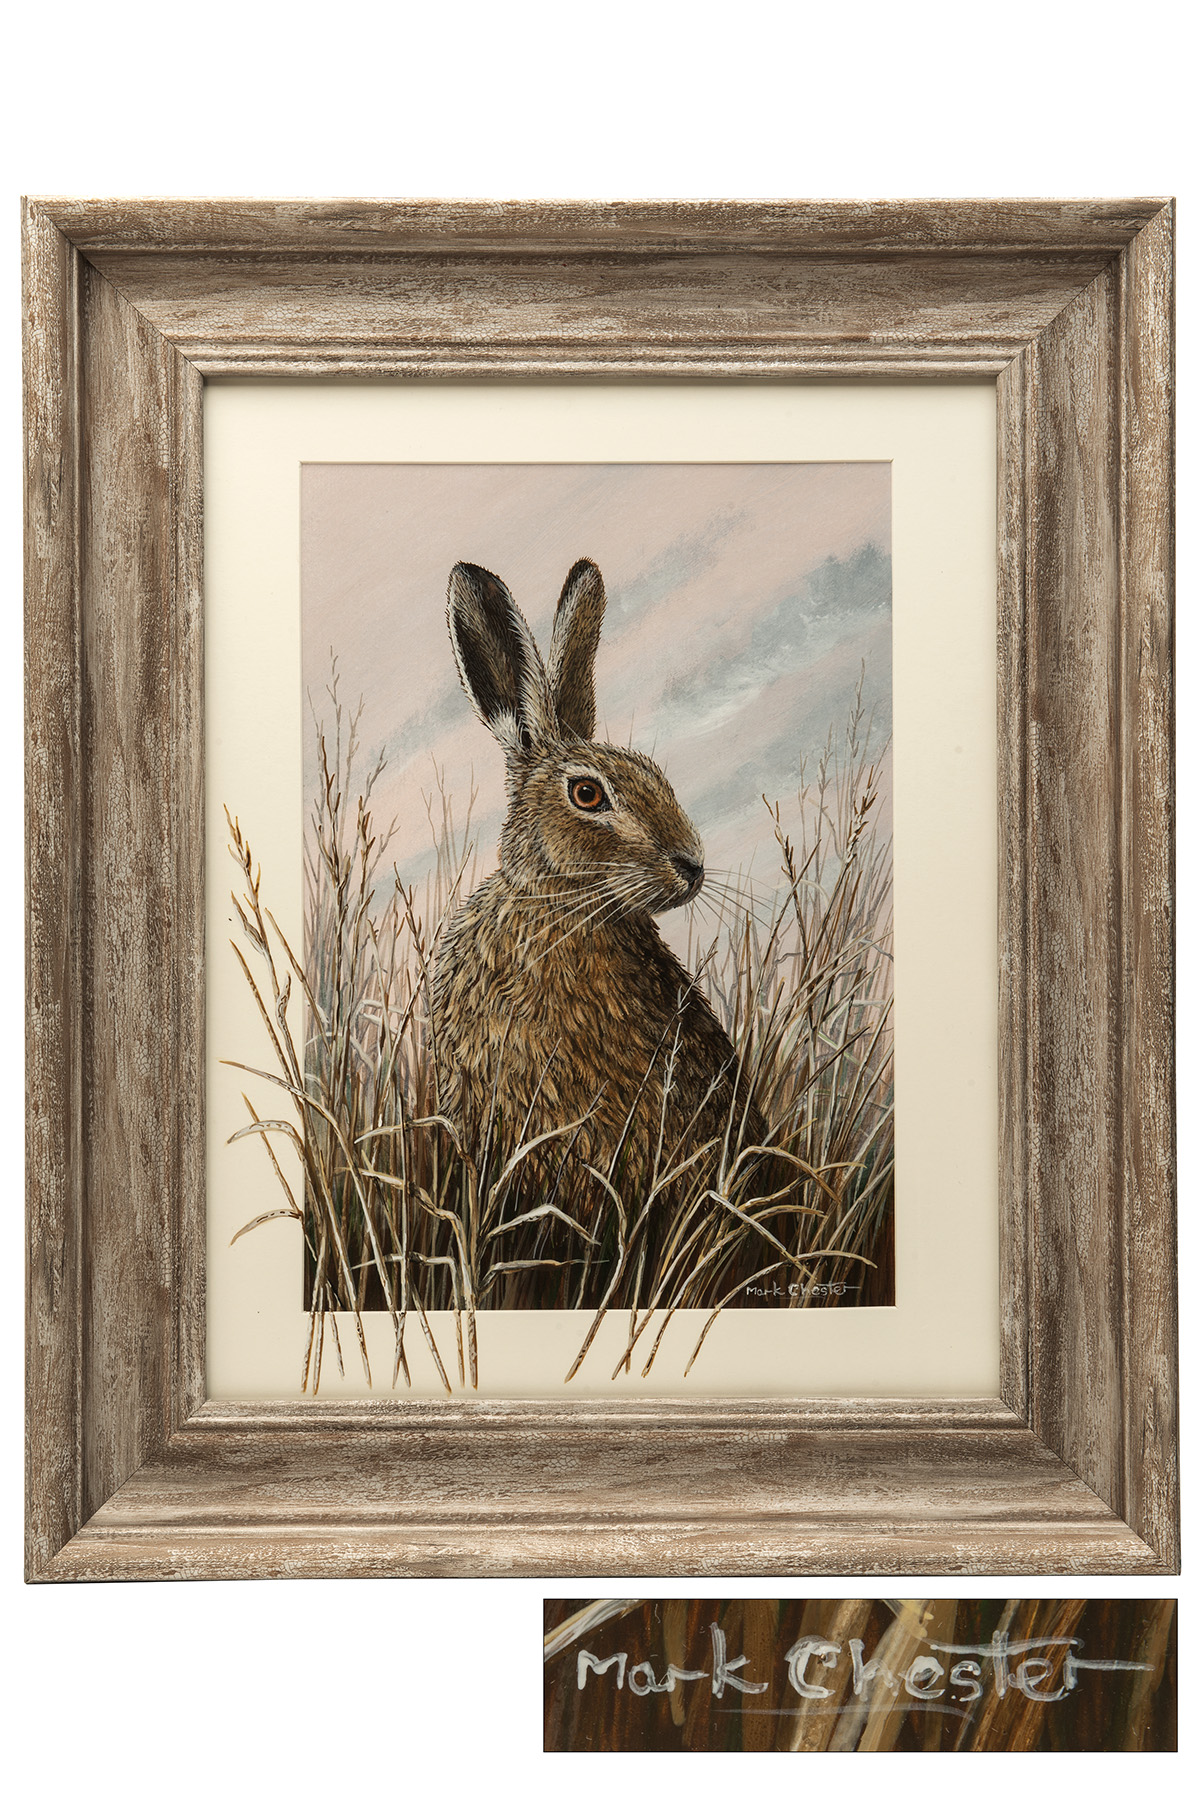 Lot 53 - MARK CHESTER (F.W.A.S.) 'ALERT HARE' an original painting signed by the artist, showing an alert